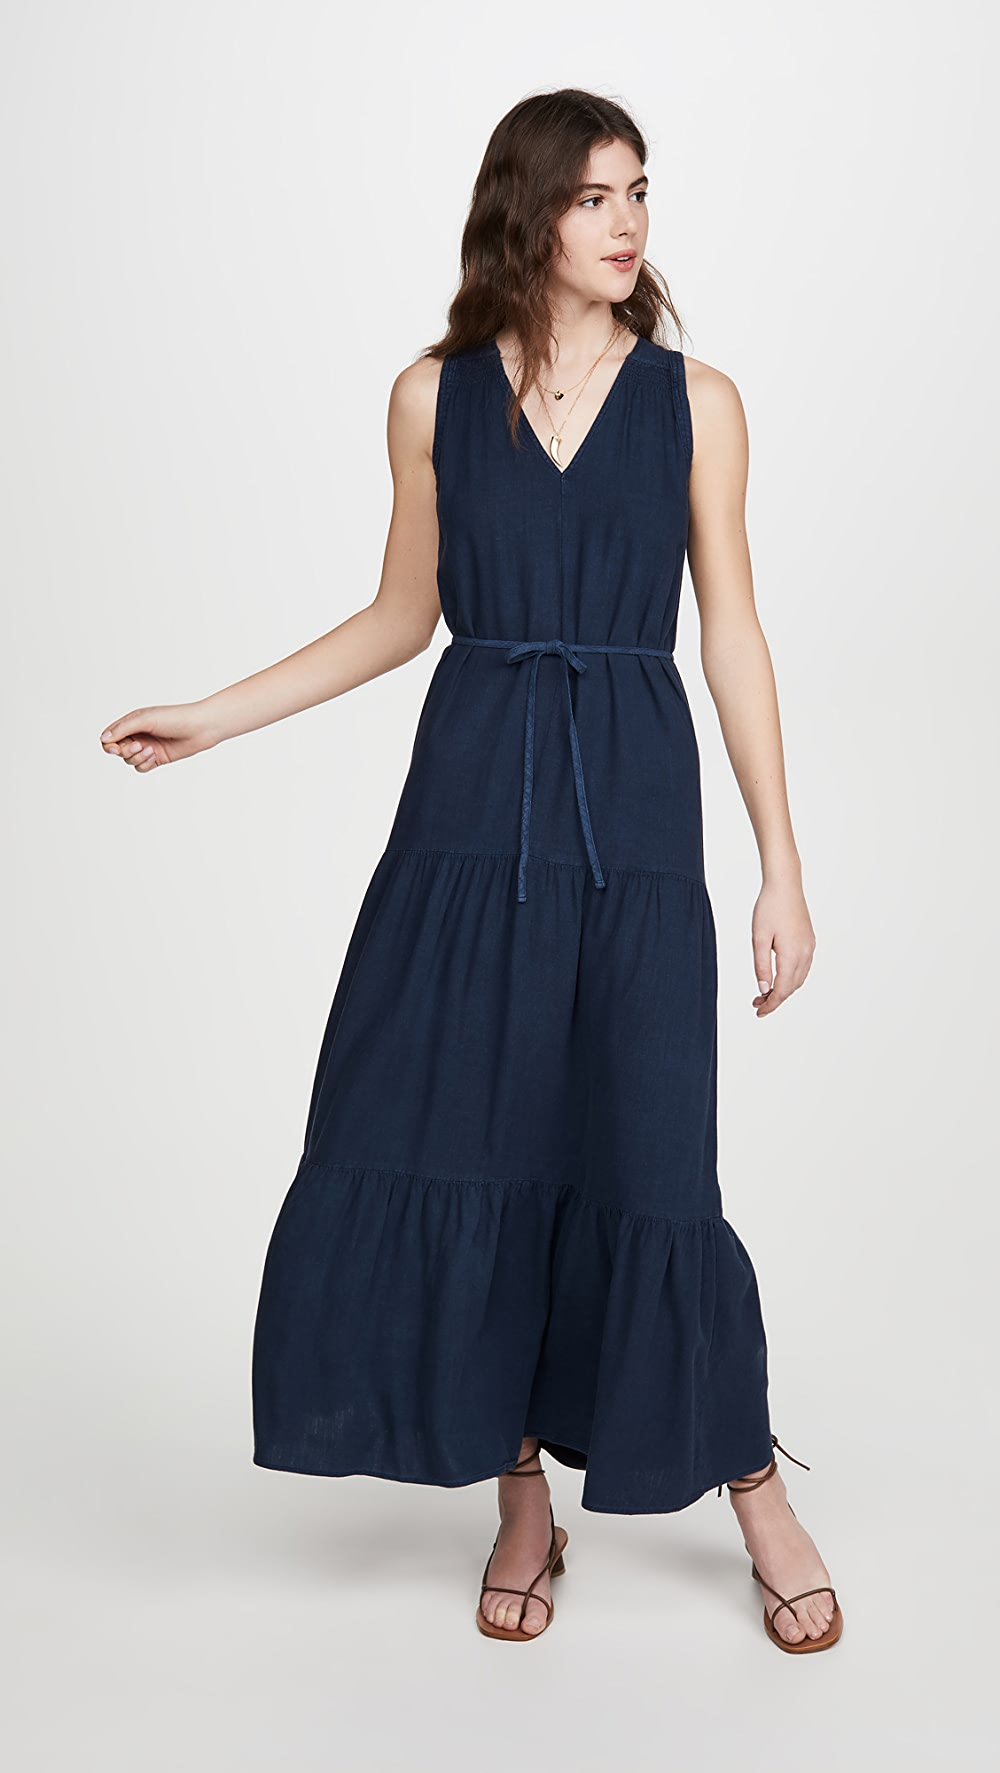 Kind-Hearted Splendid - Rosemary Dress Goods Of Every Description Are Available